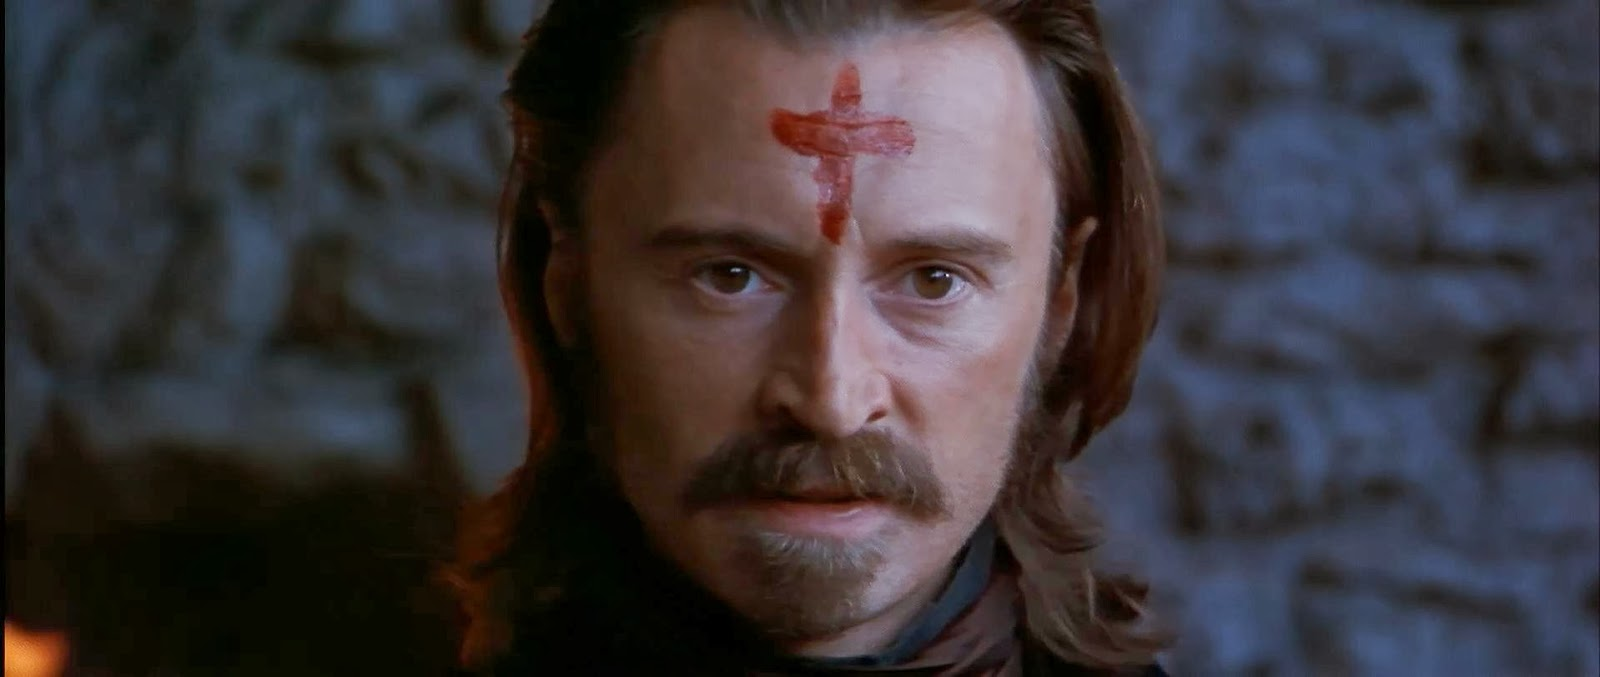 Robert Carlyle in Antonia Bird's Ravenous